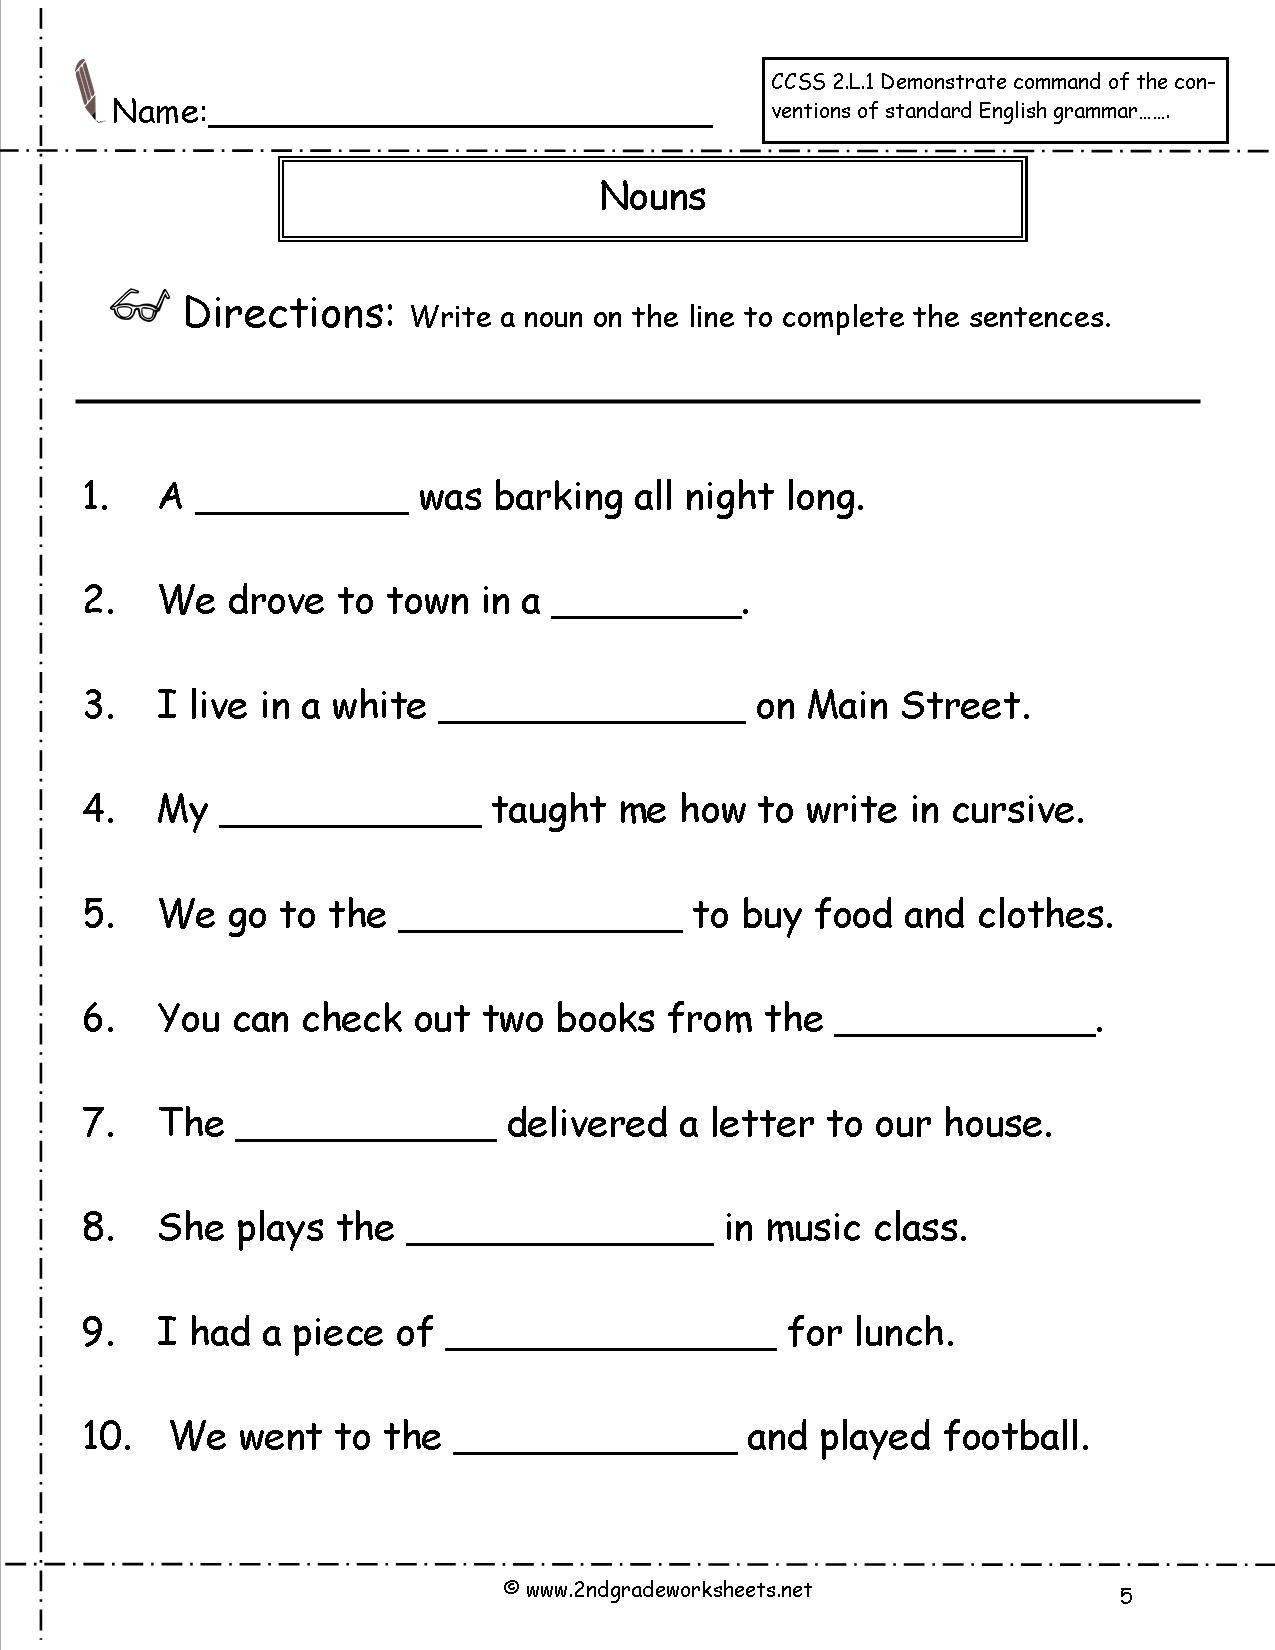 Possessive Nouns Worksheet 2nd Grade Noun Worksheets for Grade 1